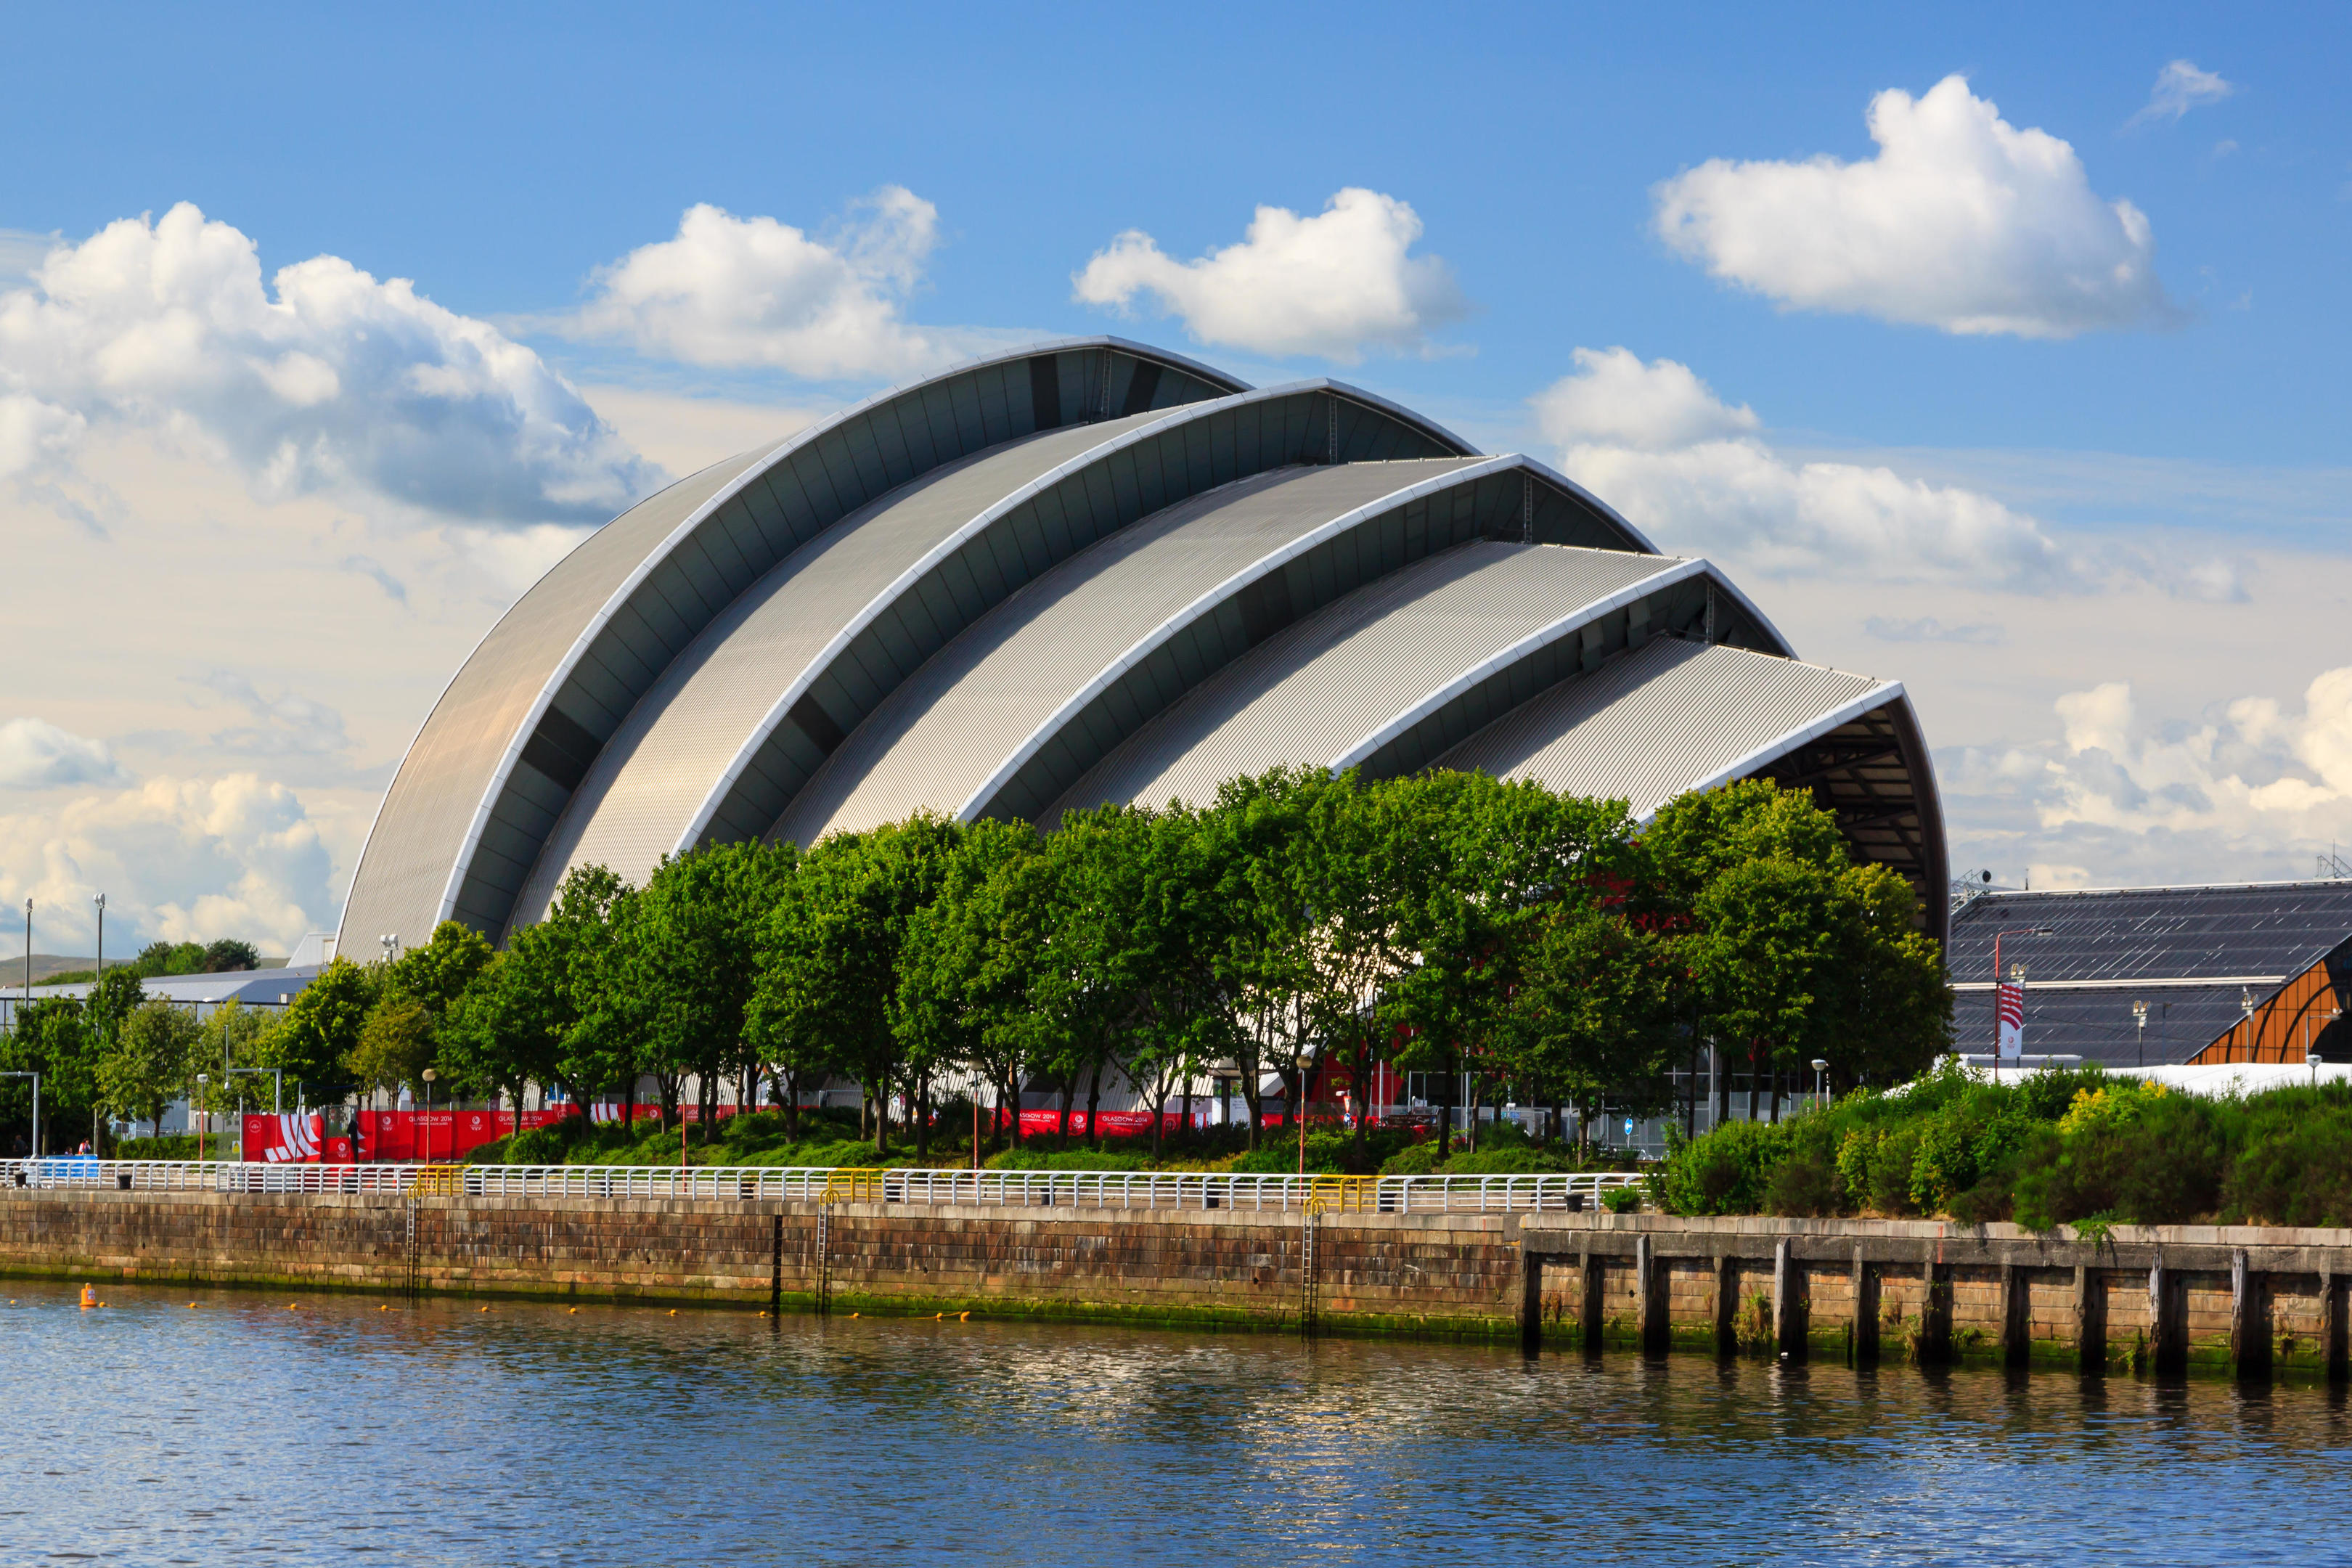 The Clyde Auditorium